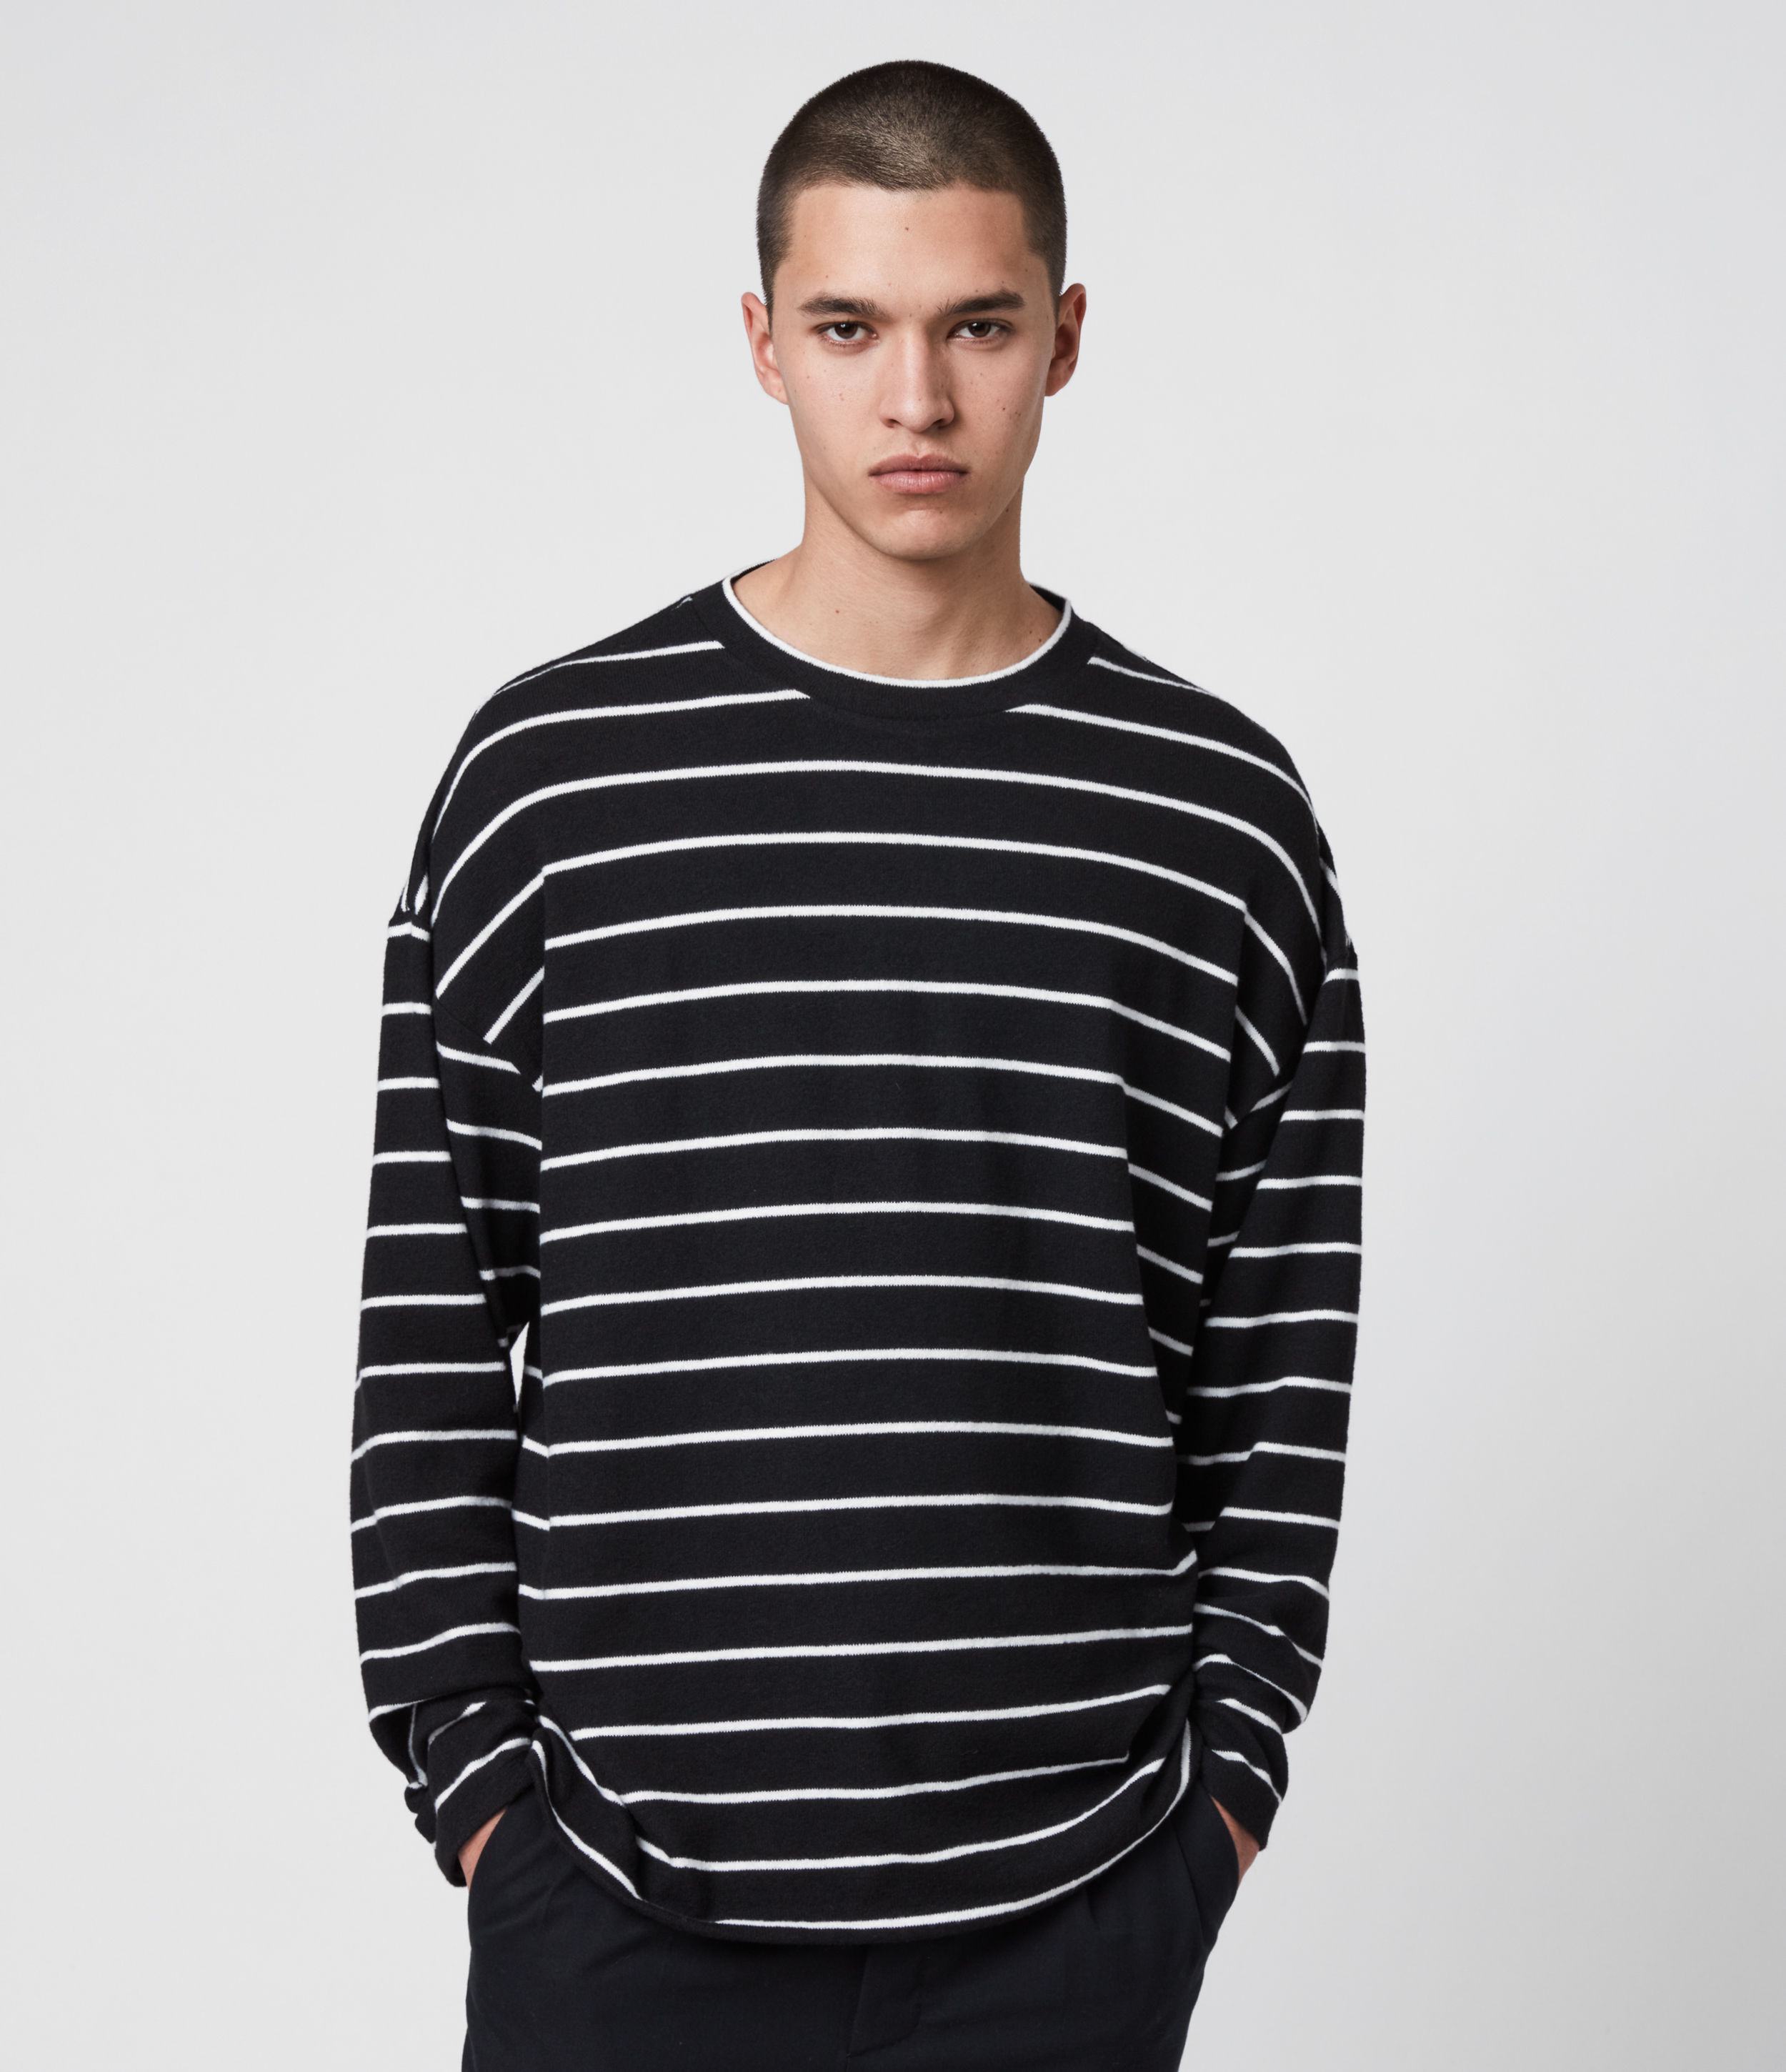 AllSaints Men's Stripe Tobias Oversized Long Sleeve Crew T-Shirt, Black and White, Size: L